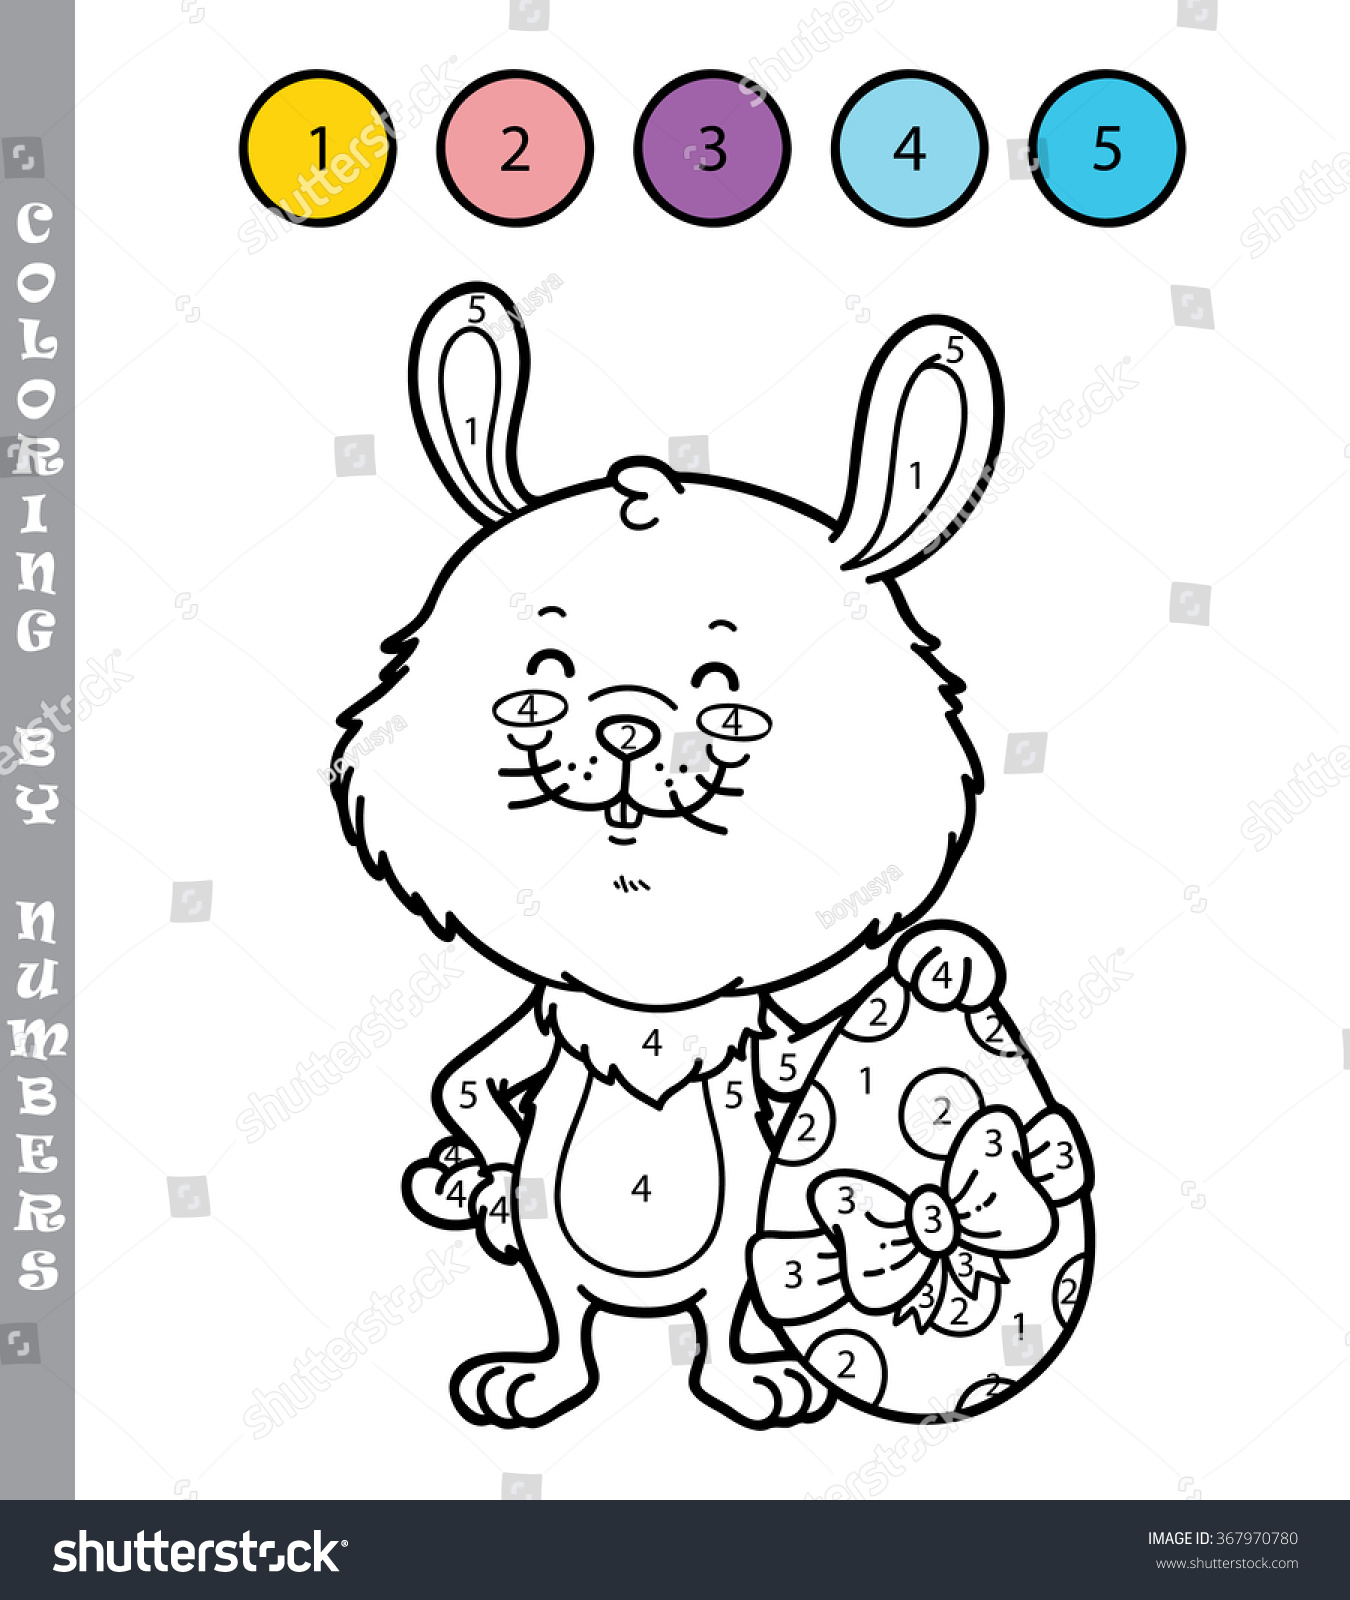 Coloring by numbers for rabbits - Save To A Lightbox